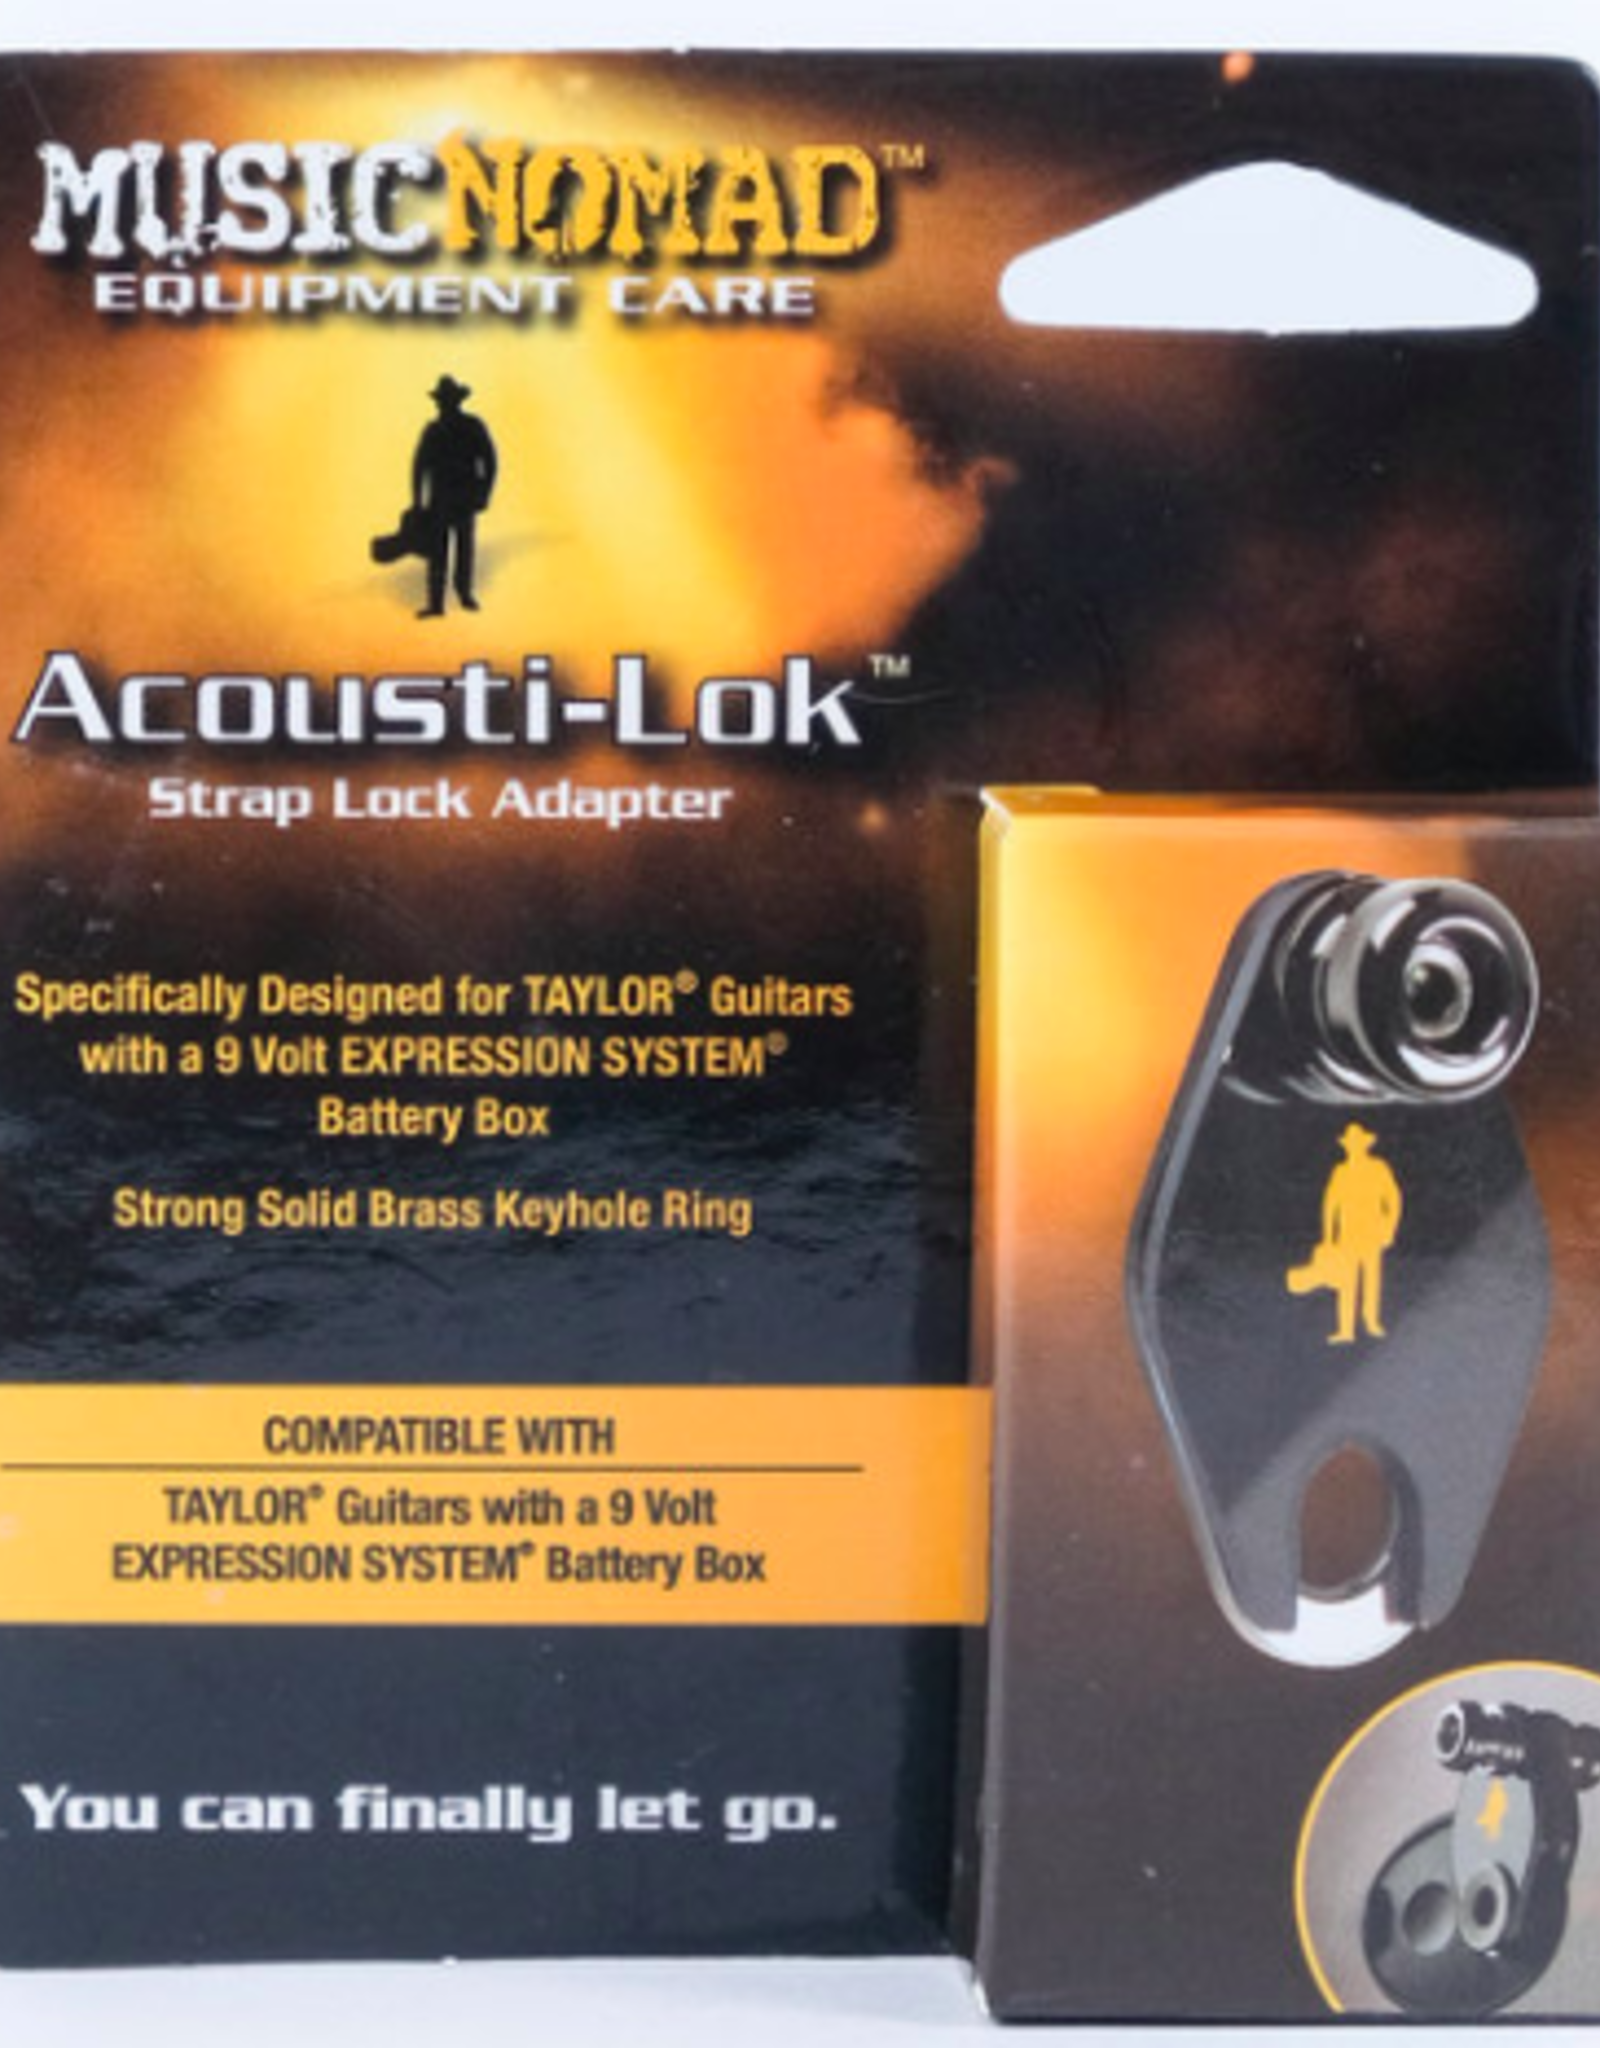 MUSIC NOMAD Acousti-Lok Strap Lock Adapter for TAYLOR® Guitars with a 9 Volt EXPRESSION SYSTEM® Battery Box